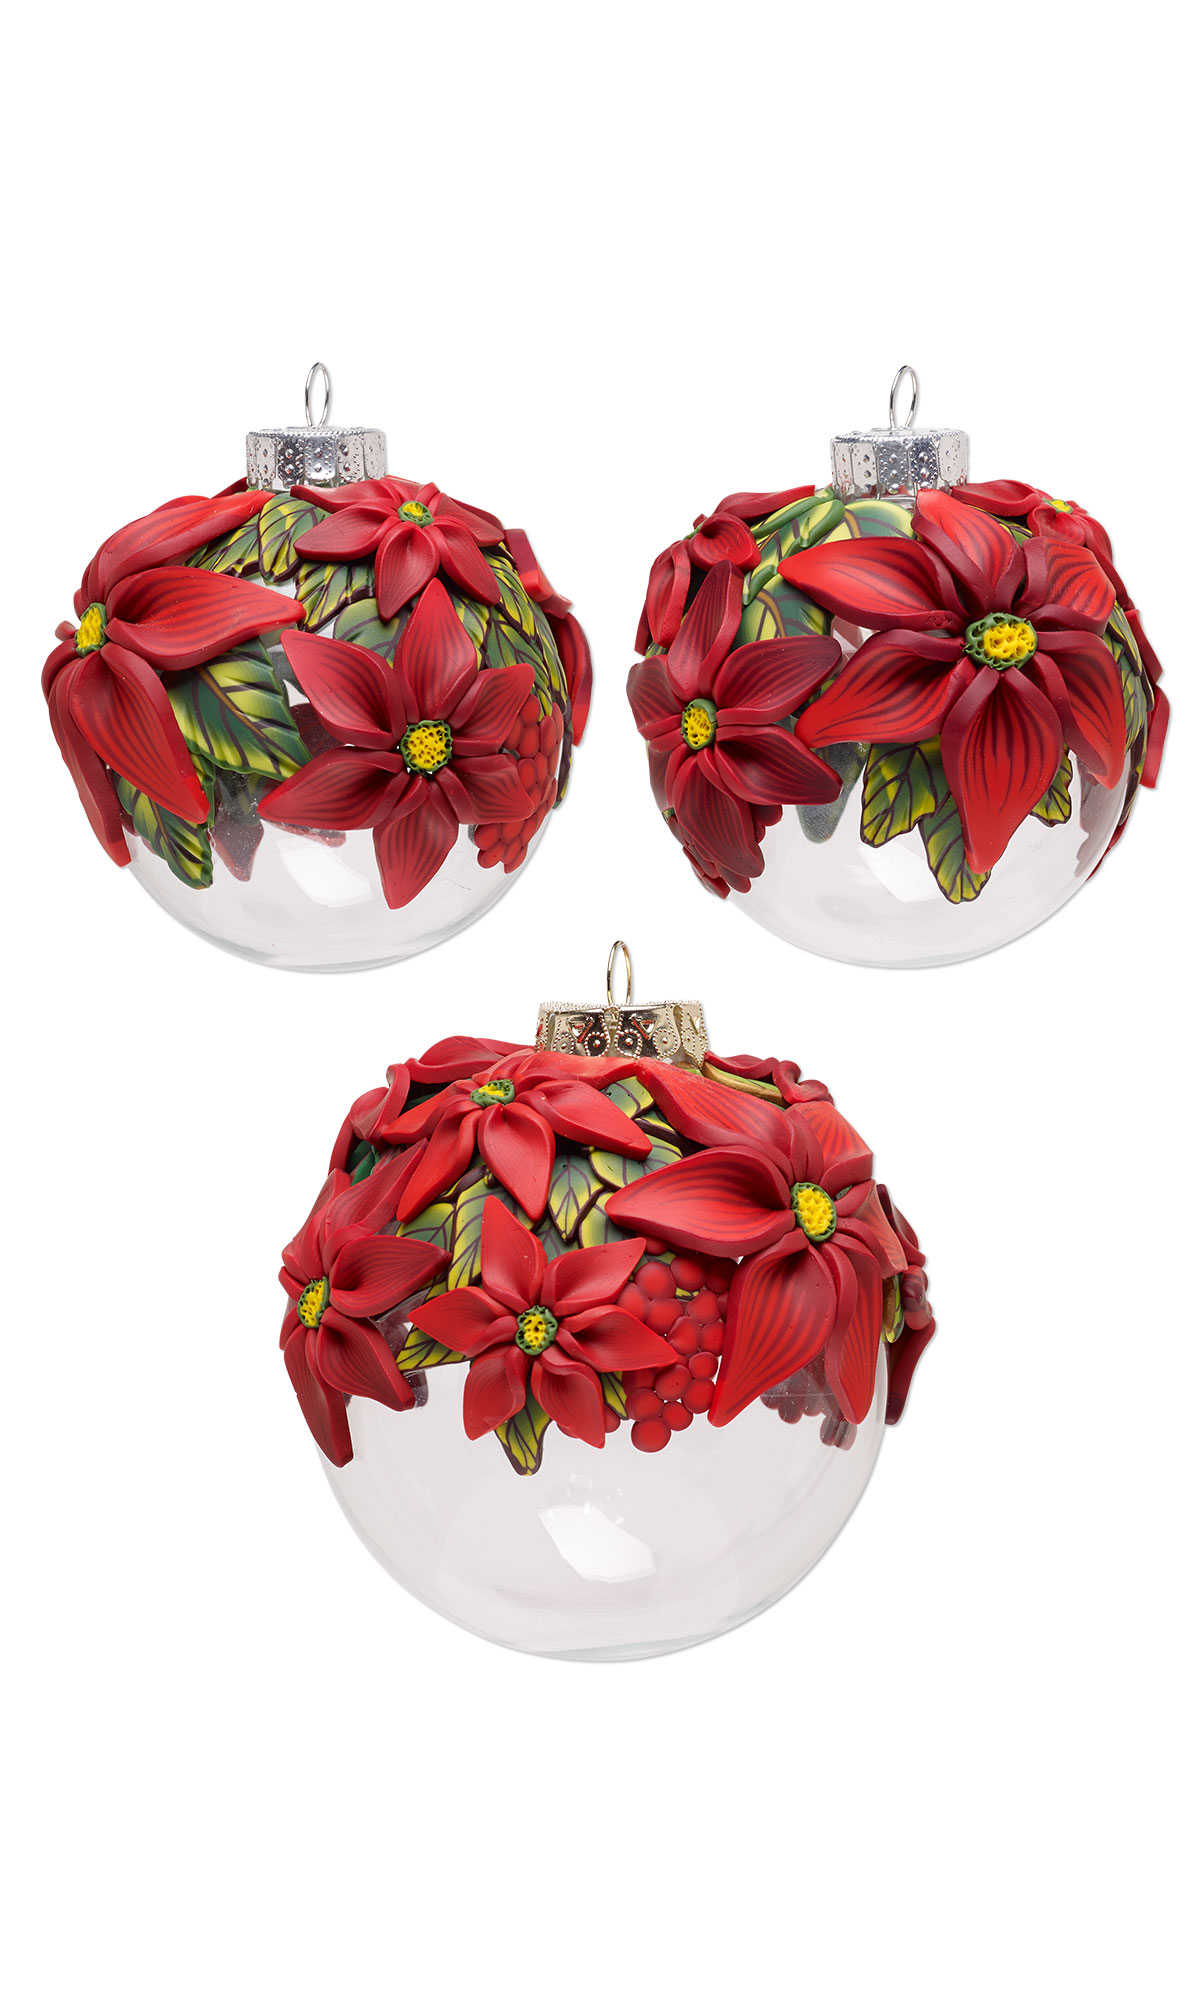 Jewelry Design Three Piece Ornament Set With Premo